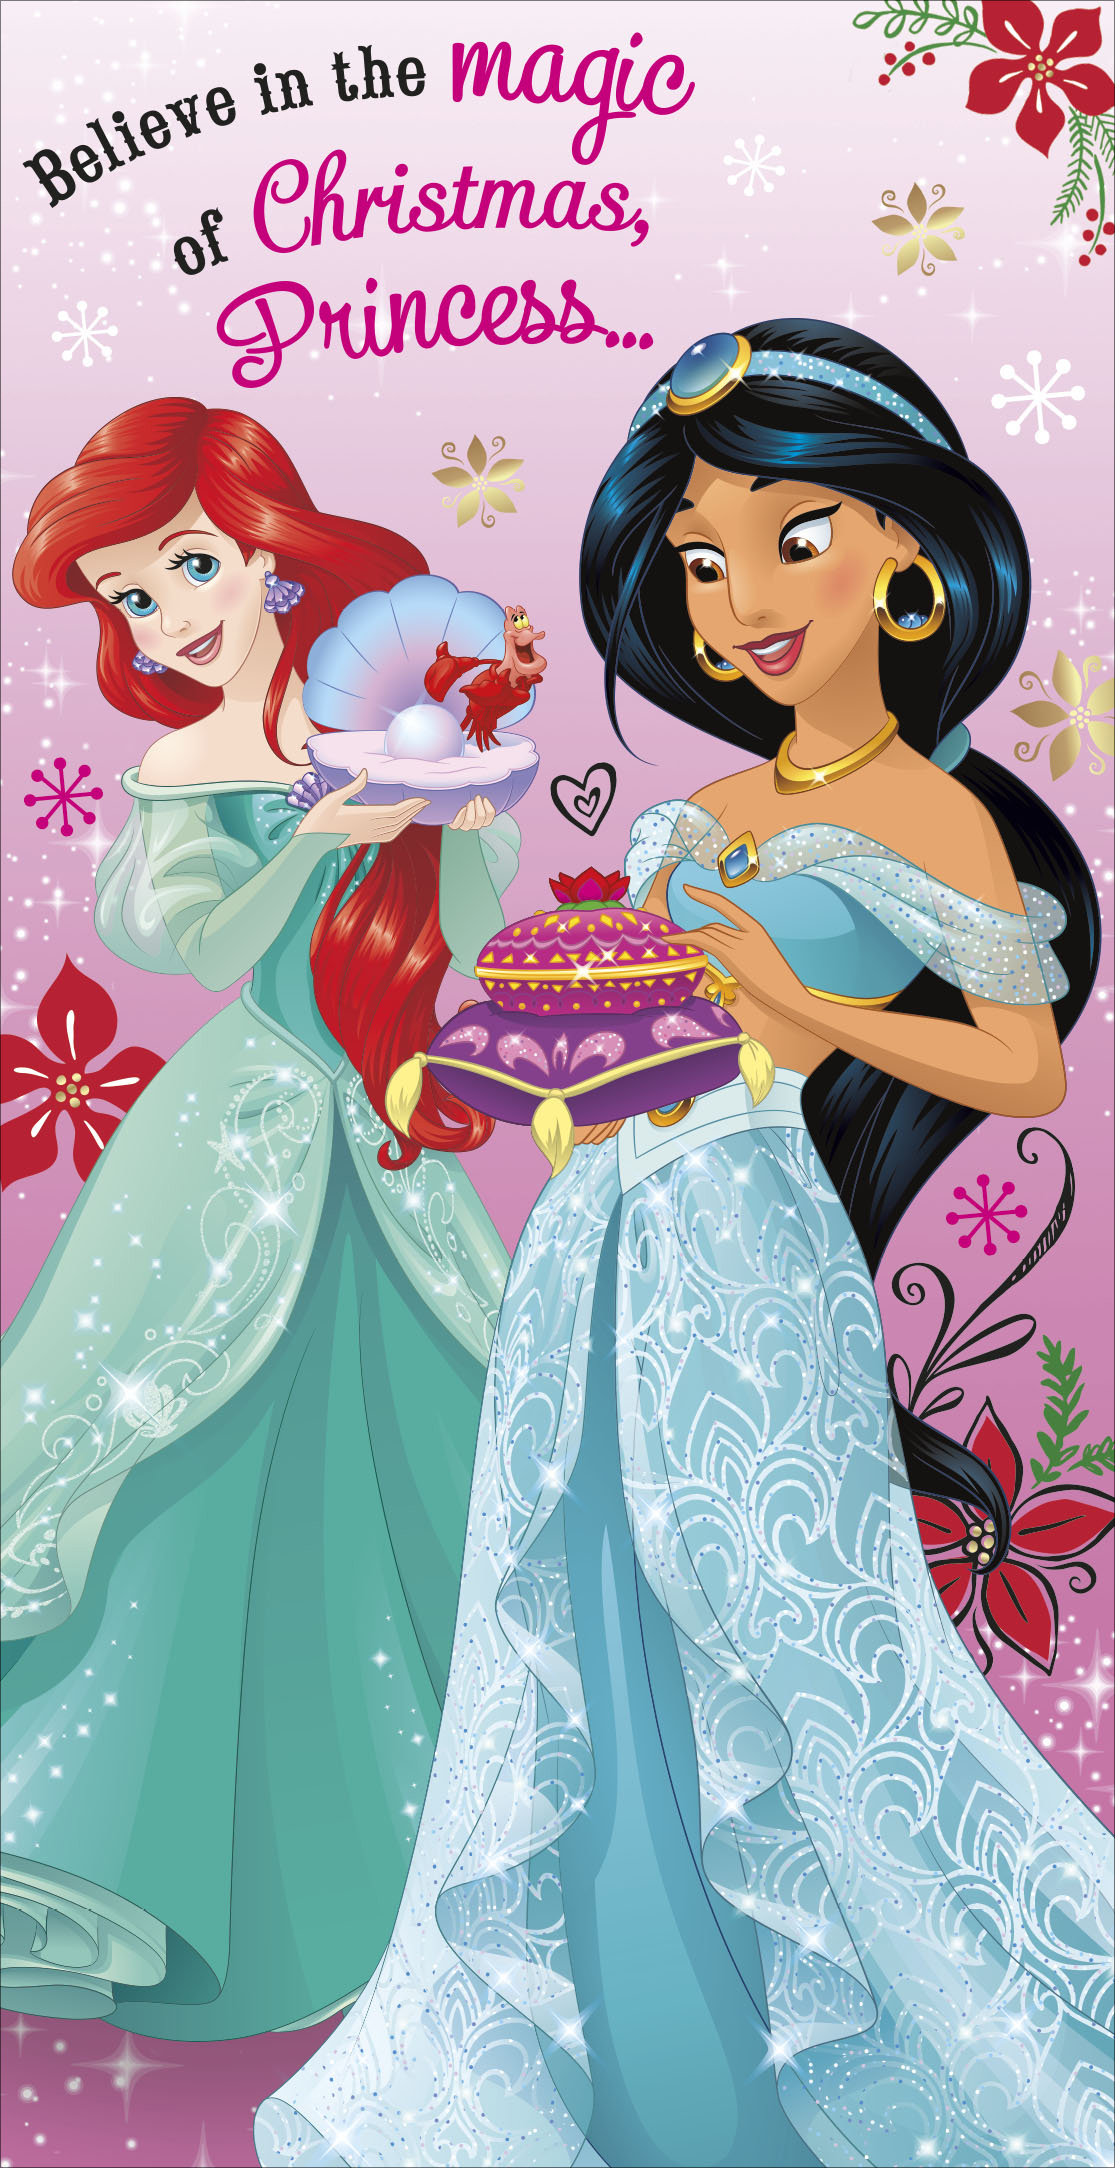 A Princess For Christmas Poster.Disney Princess Christmas Money Wallet Gift Card